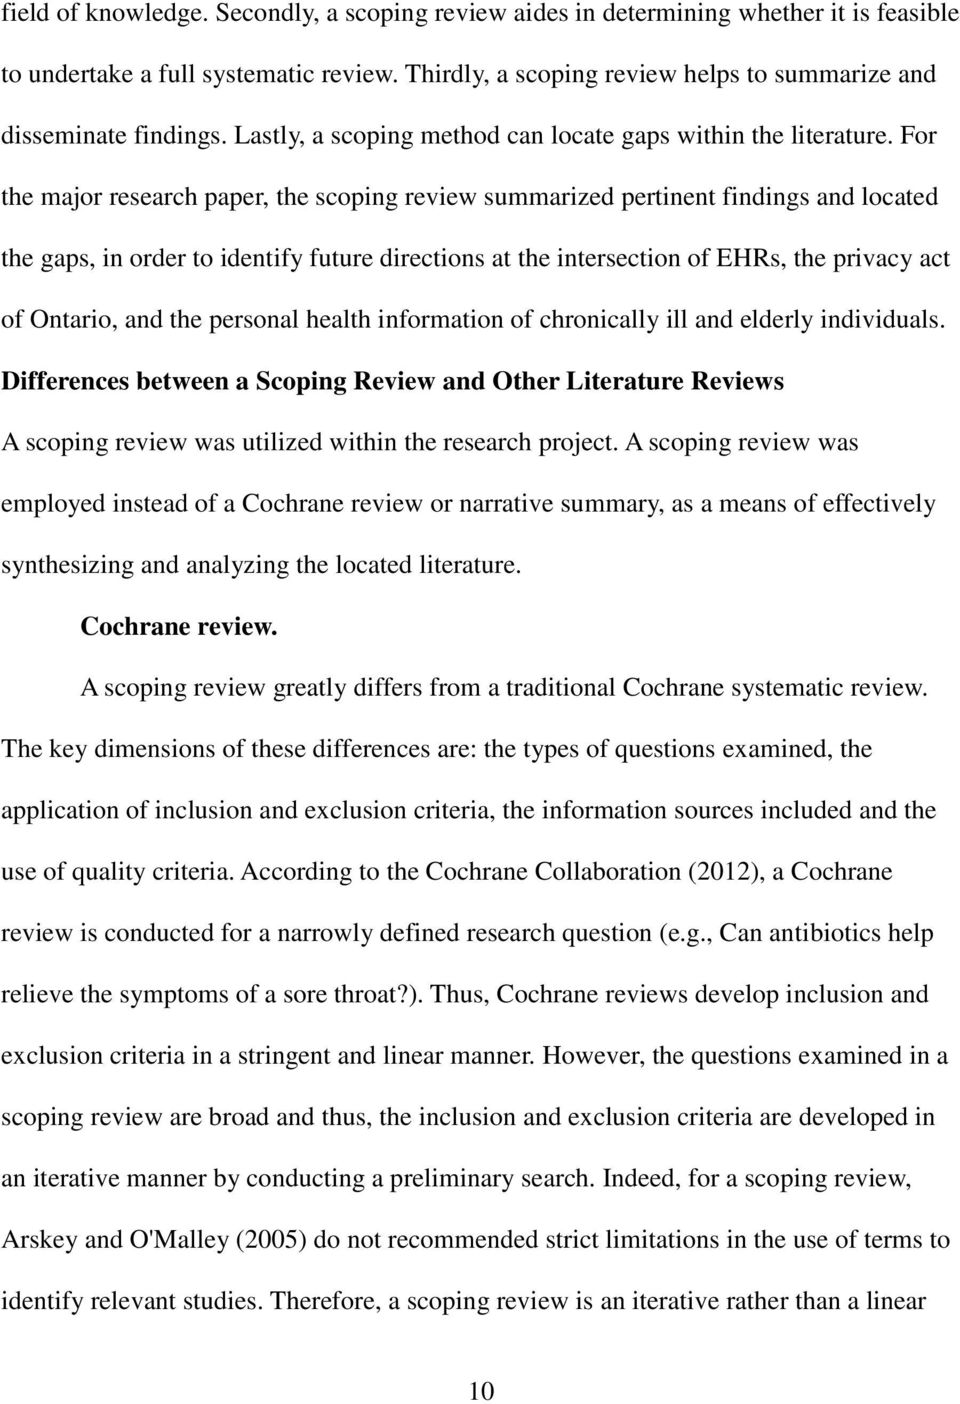 For the major research paper, the scoping review summarized pertinent findings and located the gaps, in order to identify future directions at the intersection of EHRs, the privacy act of Ontario,